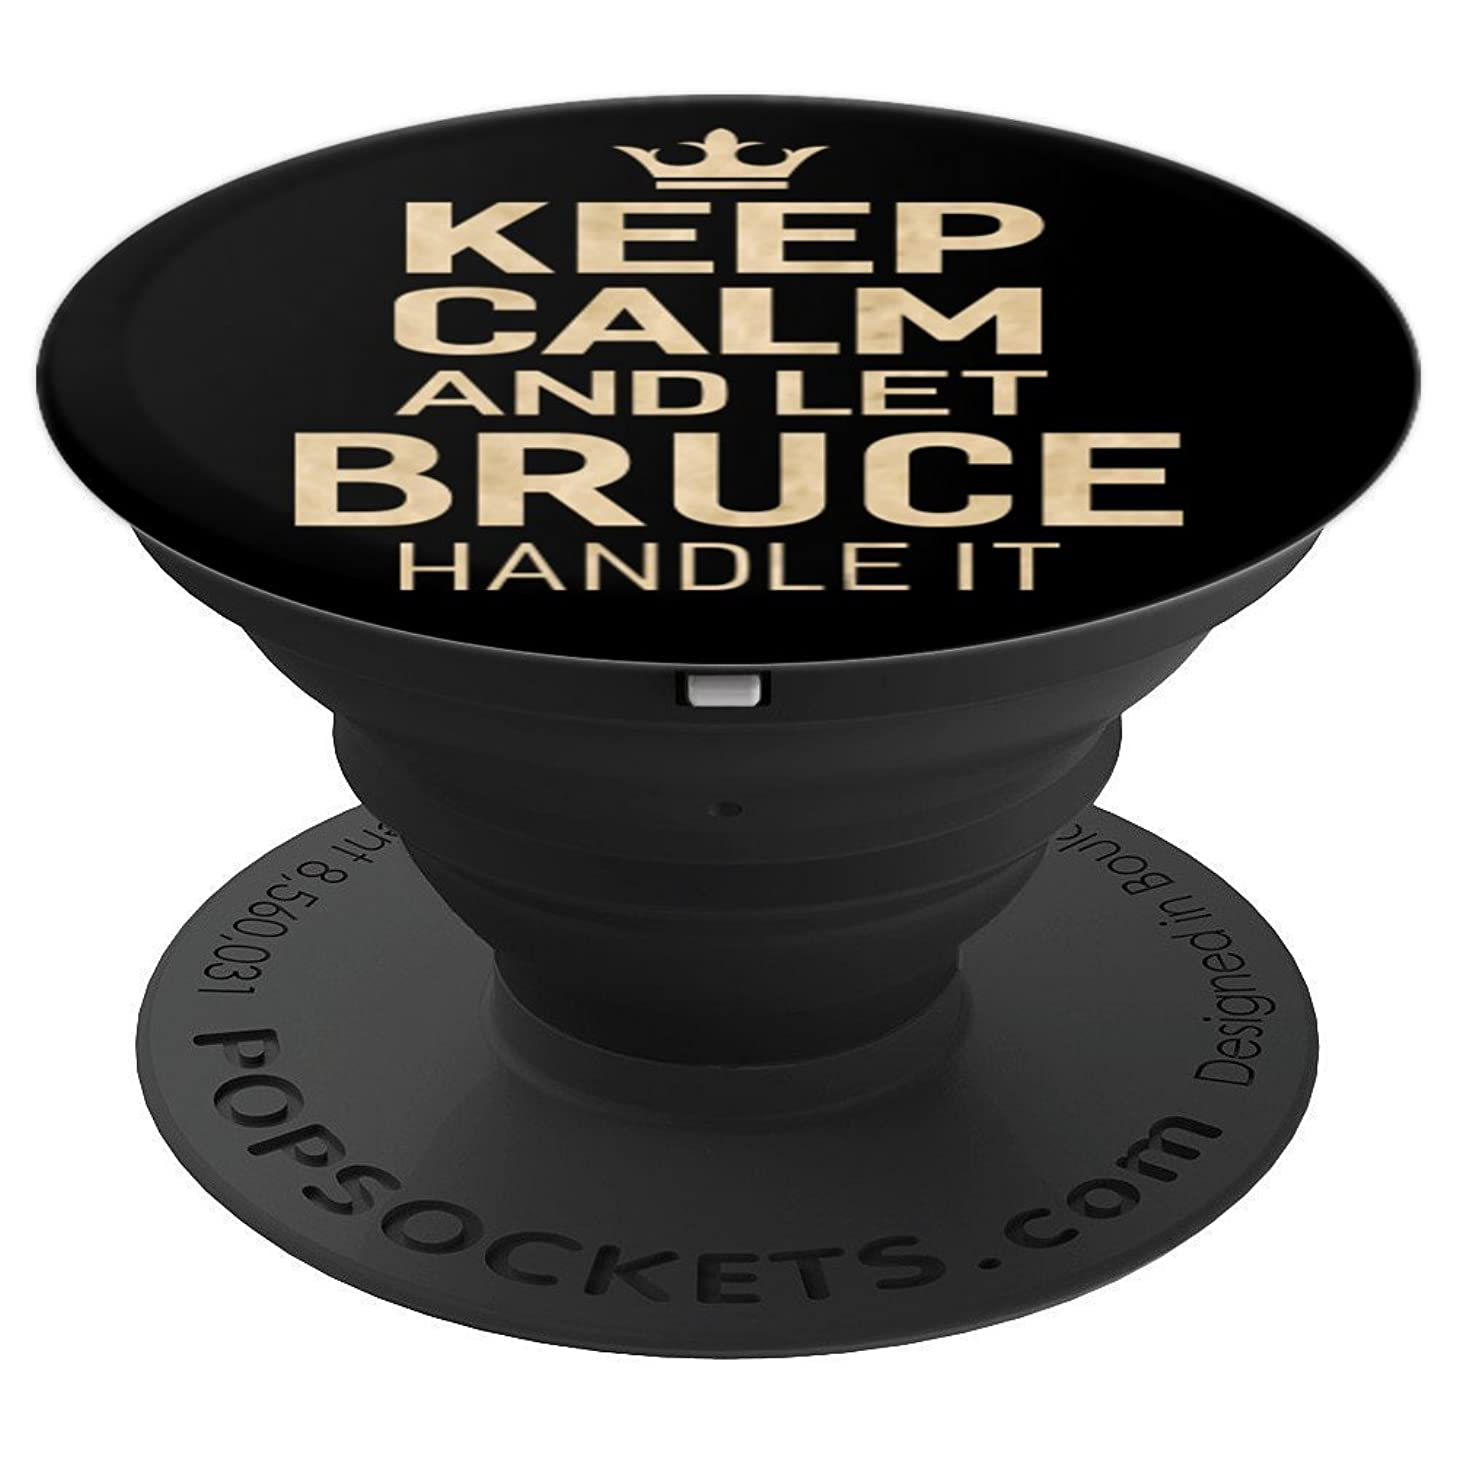 Keep Calm and Let Bruce Handle It Funny Gift Name Pop Socket - PopSockets Grip and Stand for Phones and Tablets